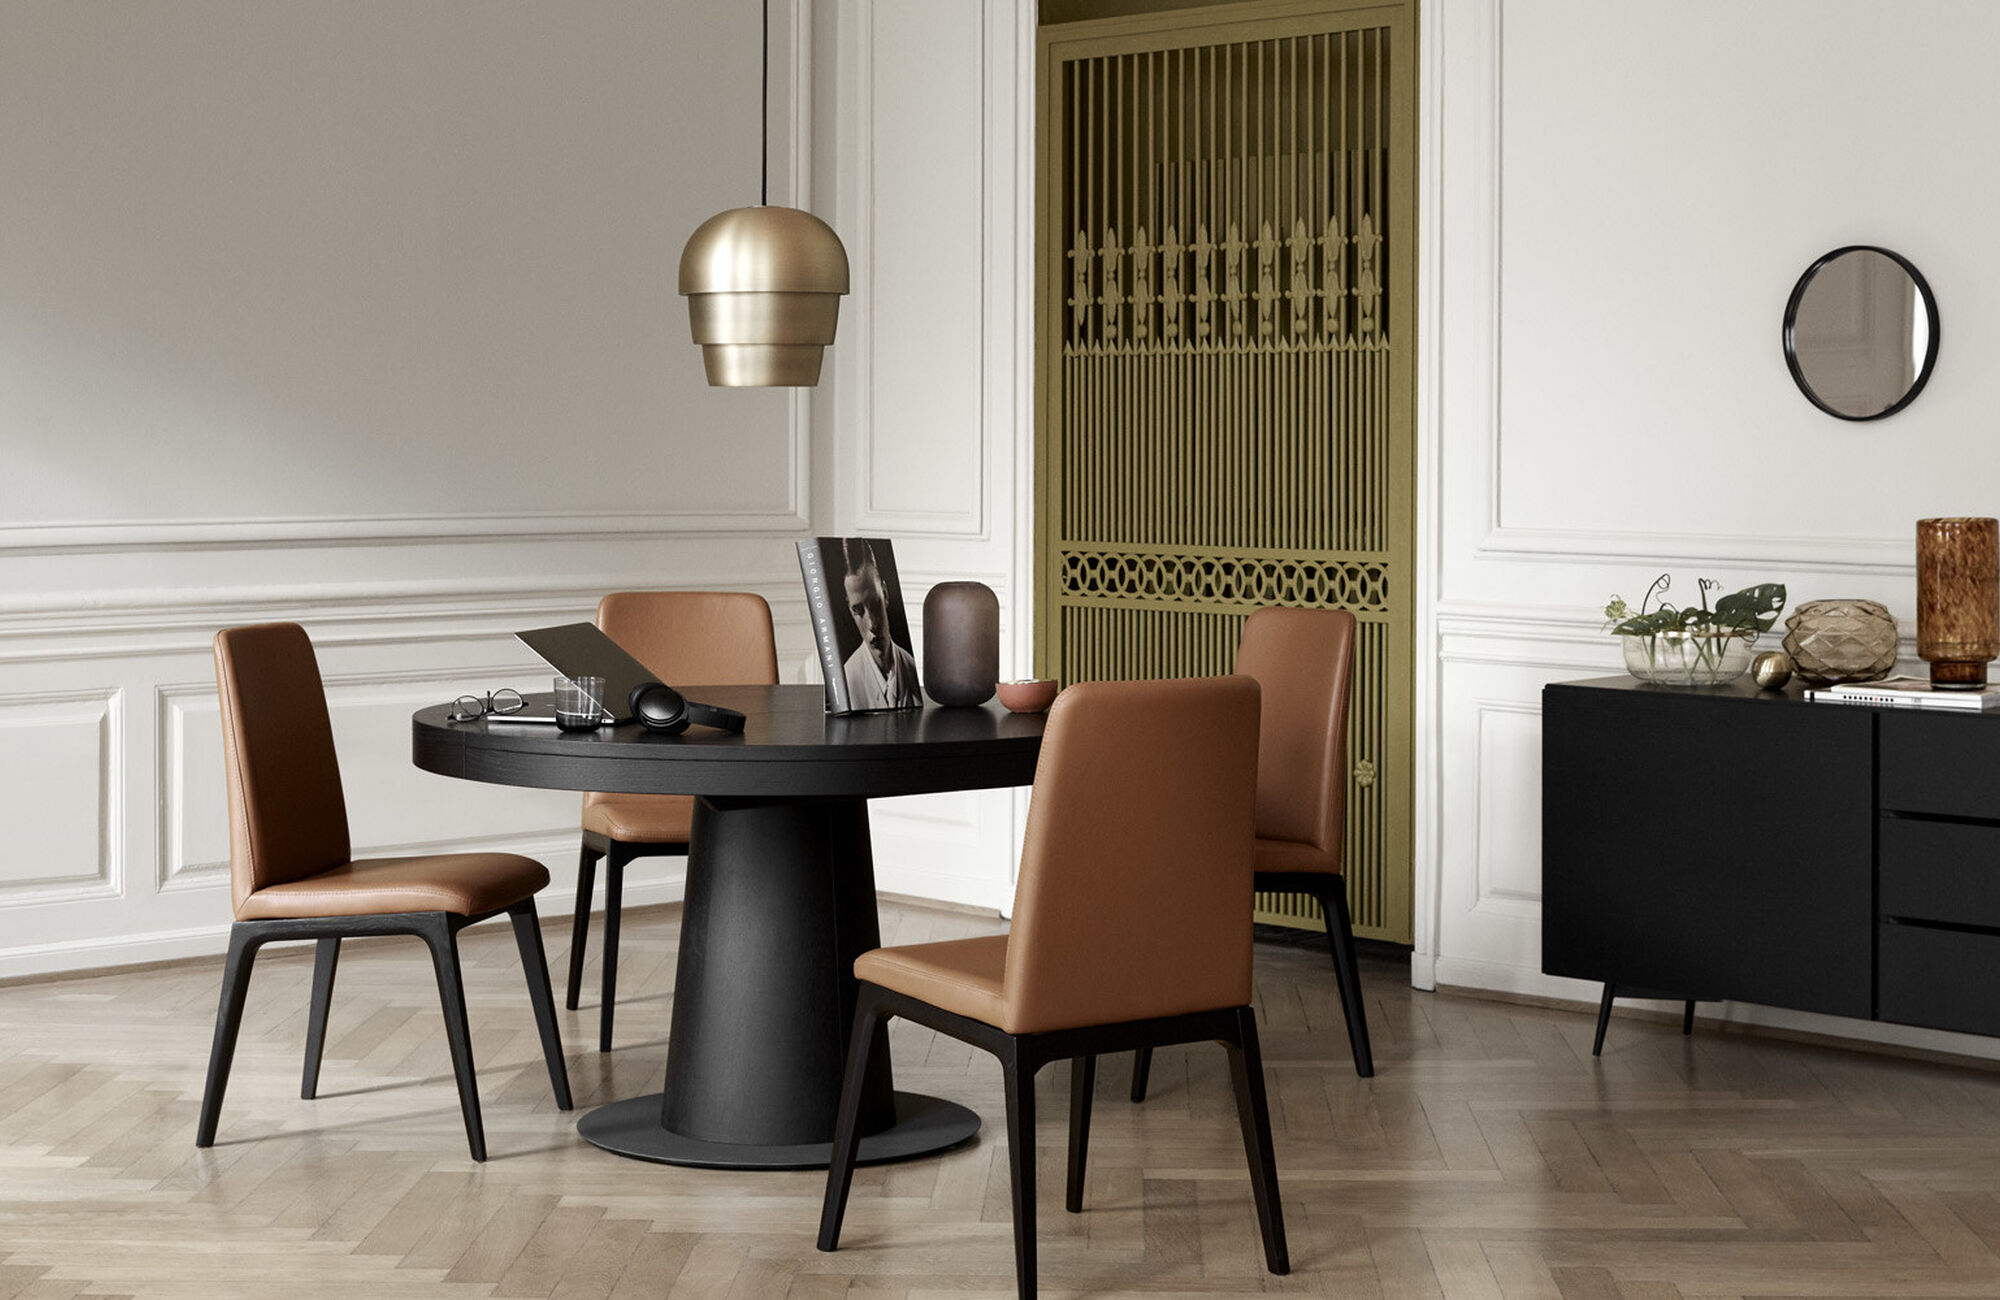 Dining tables - Granada table with supplementary tabletop